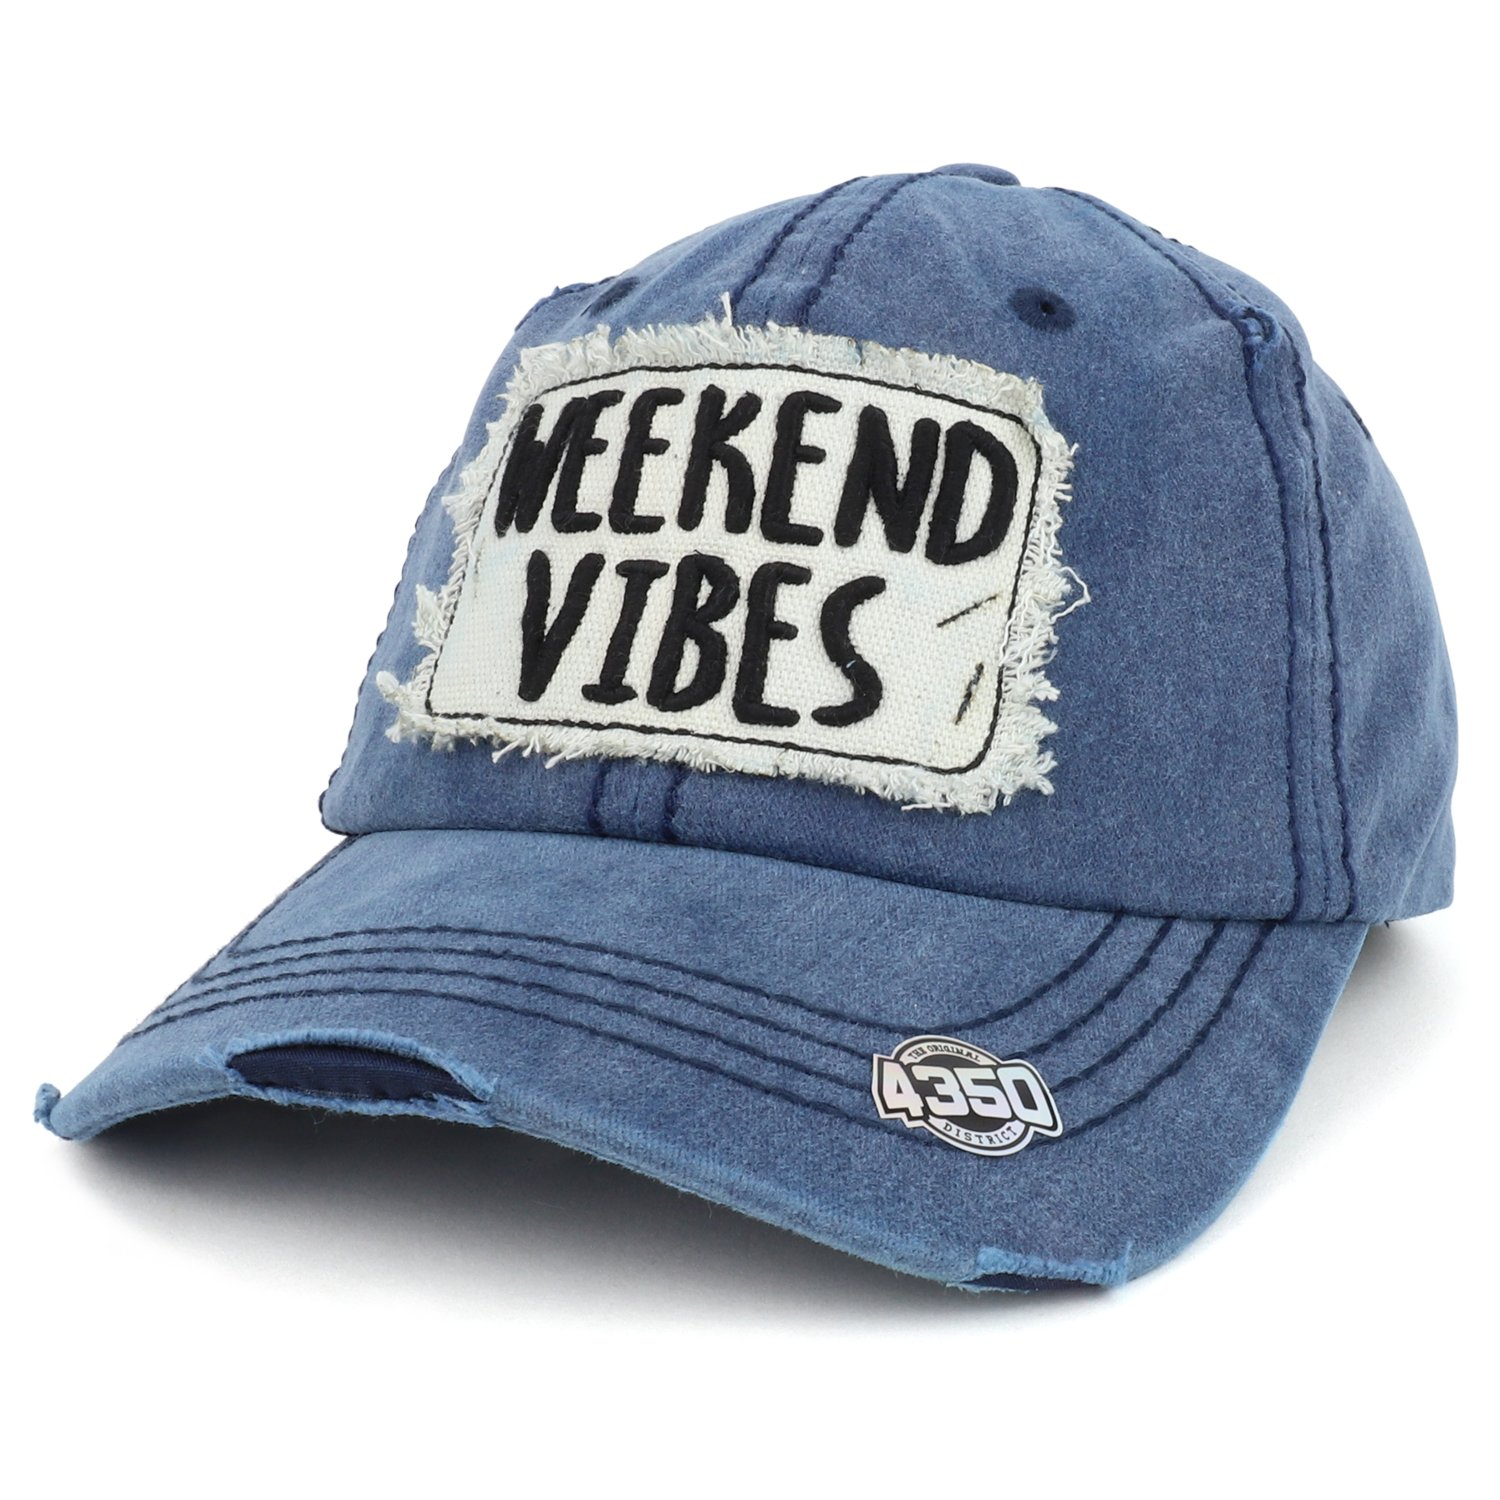 Trendy Apparel Shop Weekend Vibes 3D Letter Embroidered Frayed Vintage  Unstructured Baseball Cap - Navy at Amazon Women s Clothing store  0f850a29f6f